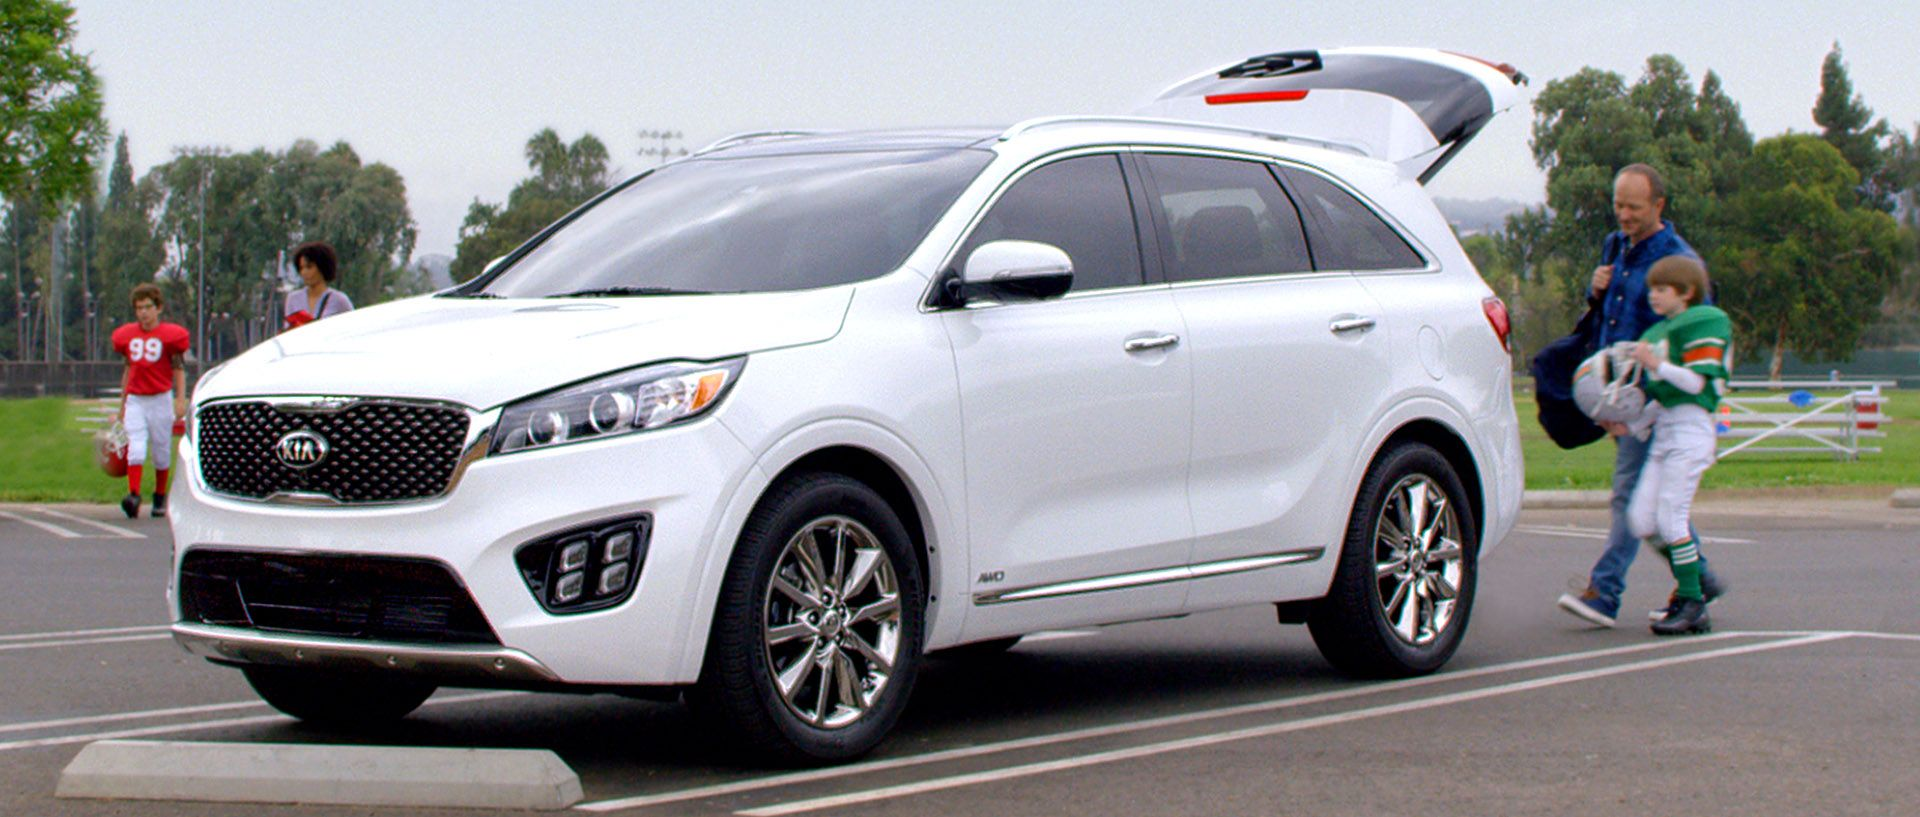 overview listings caliber lease options the motor lx vehicle sorento features leasing td kia